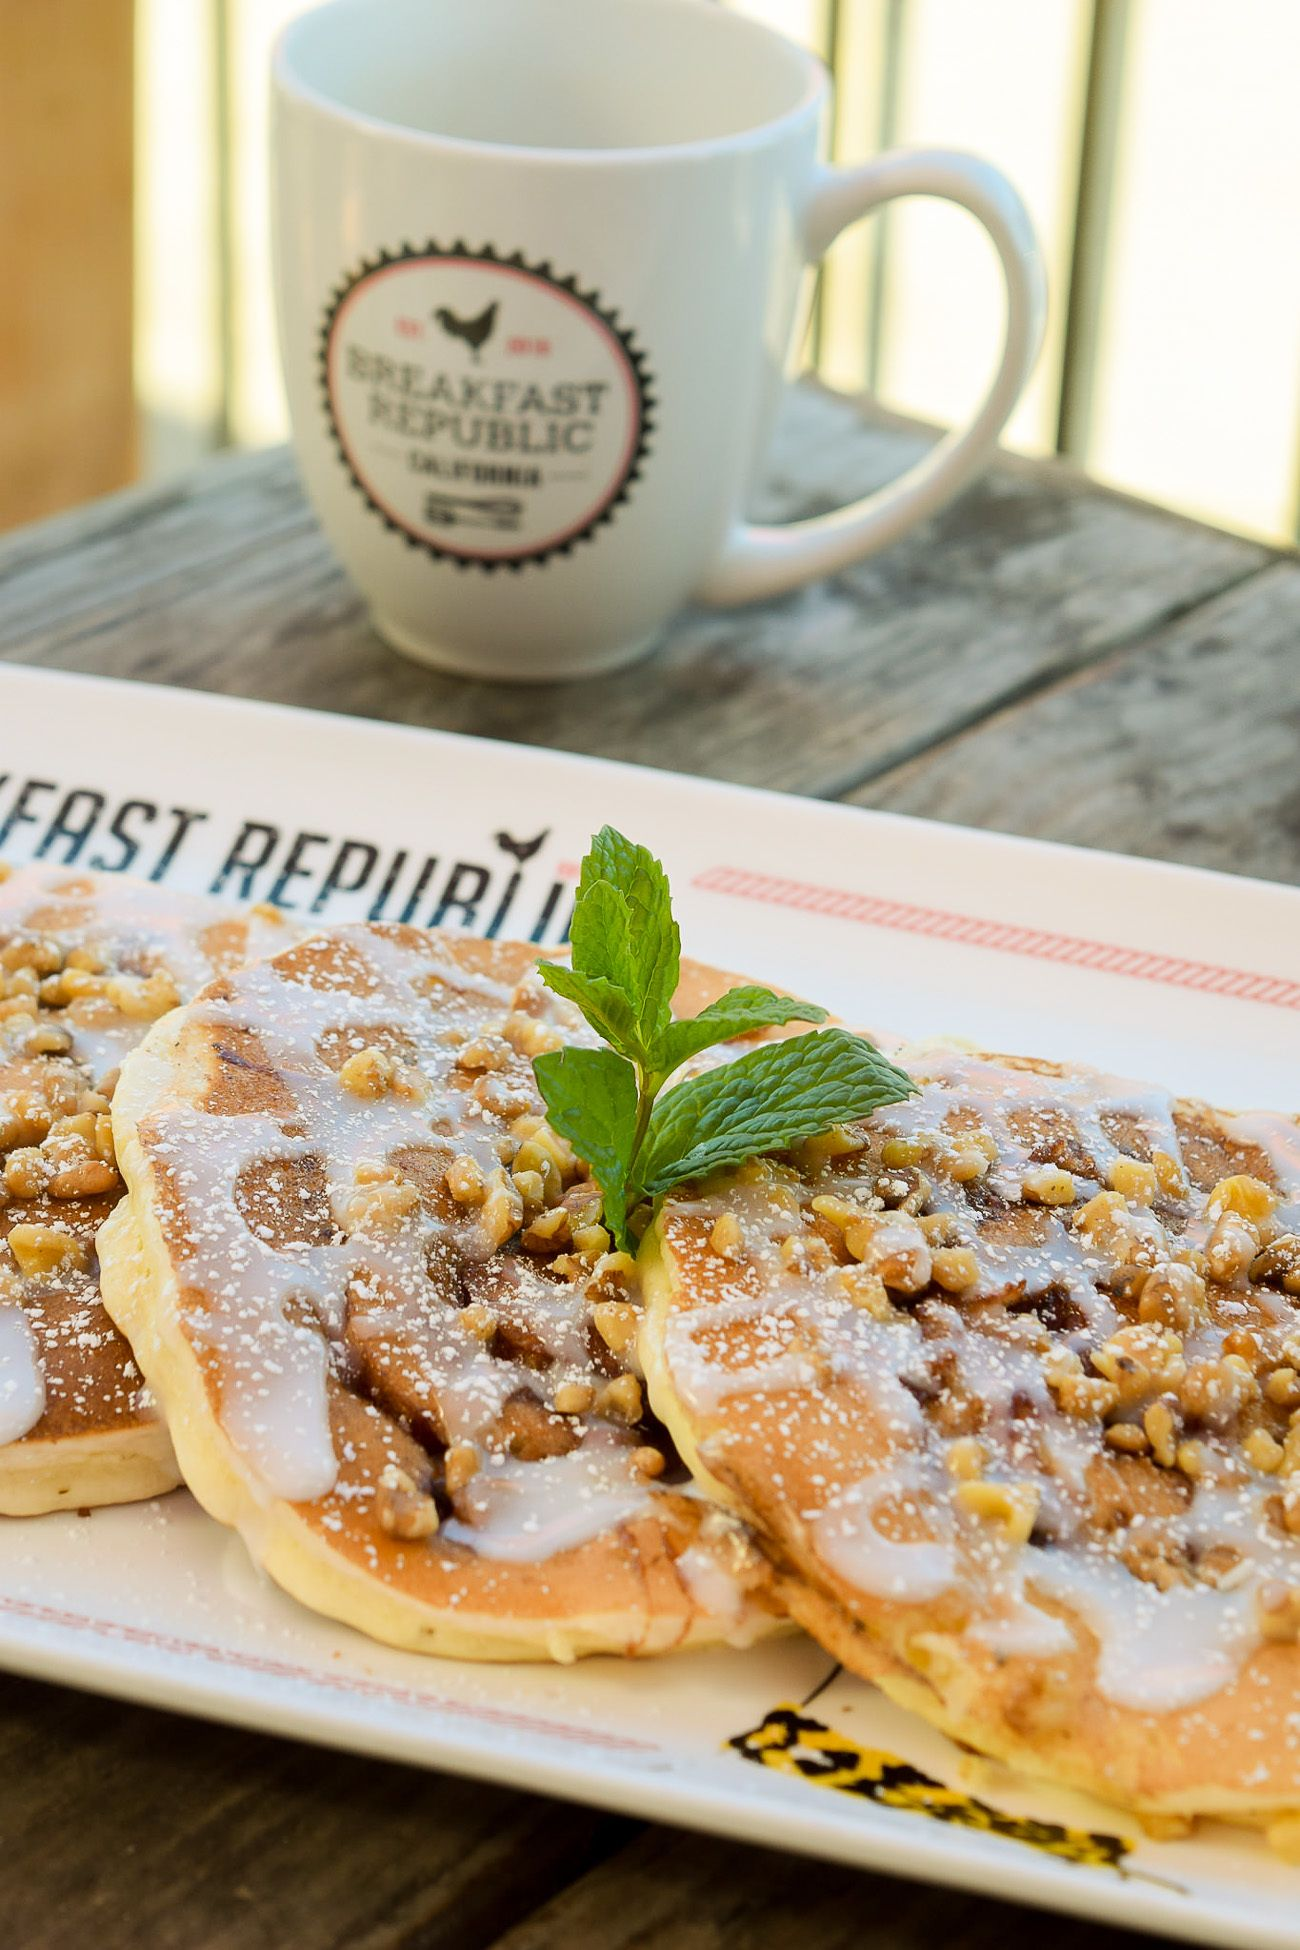 The cinnamon roll pancake recipe from Breakfast Republic restaurant in San Diego.